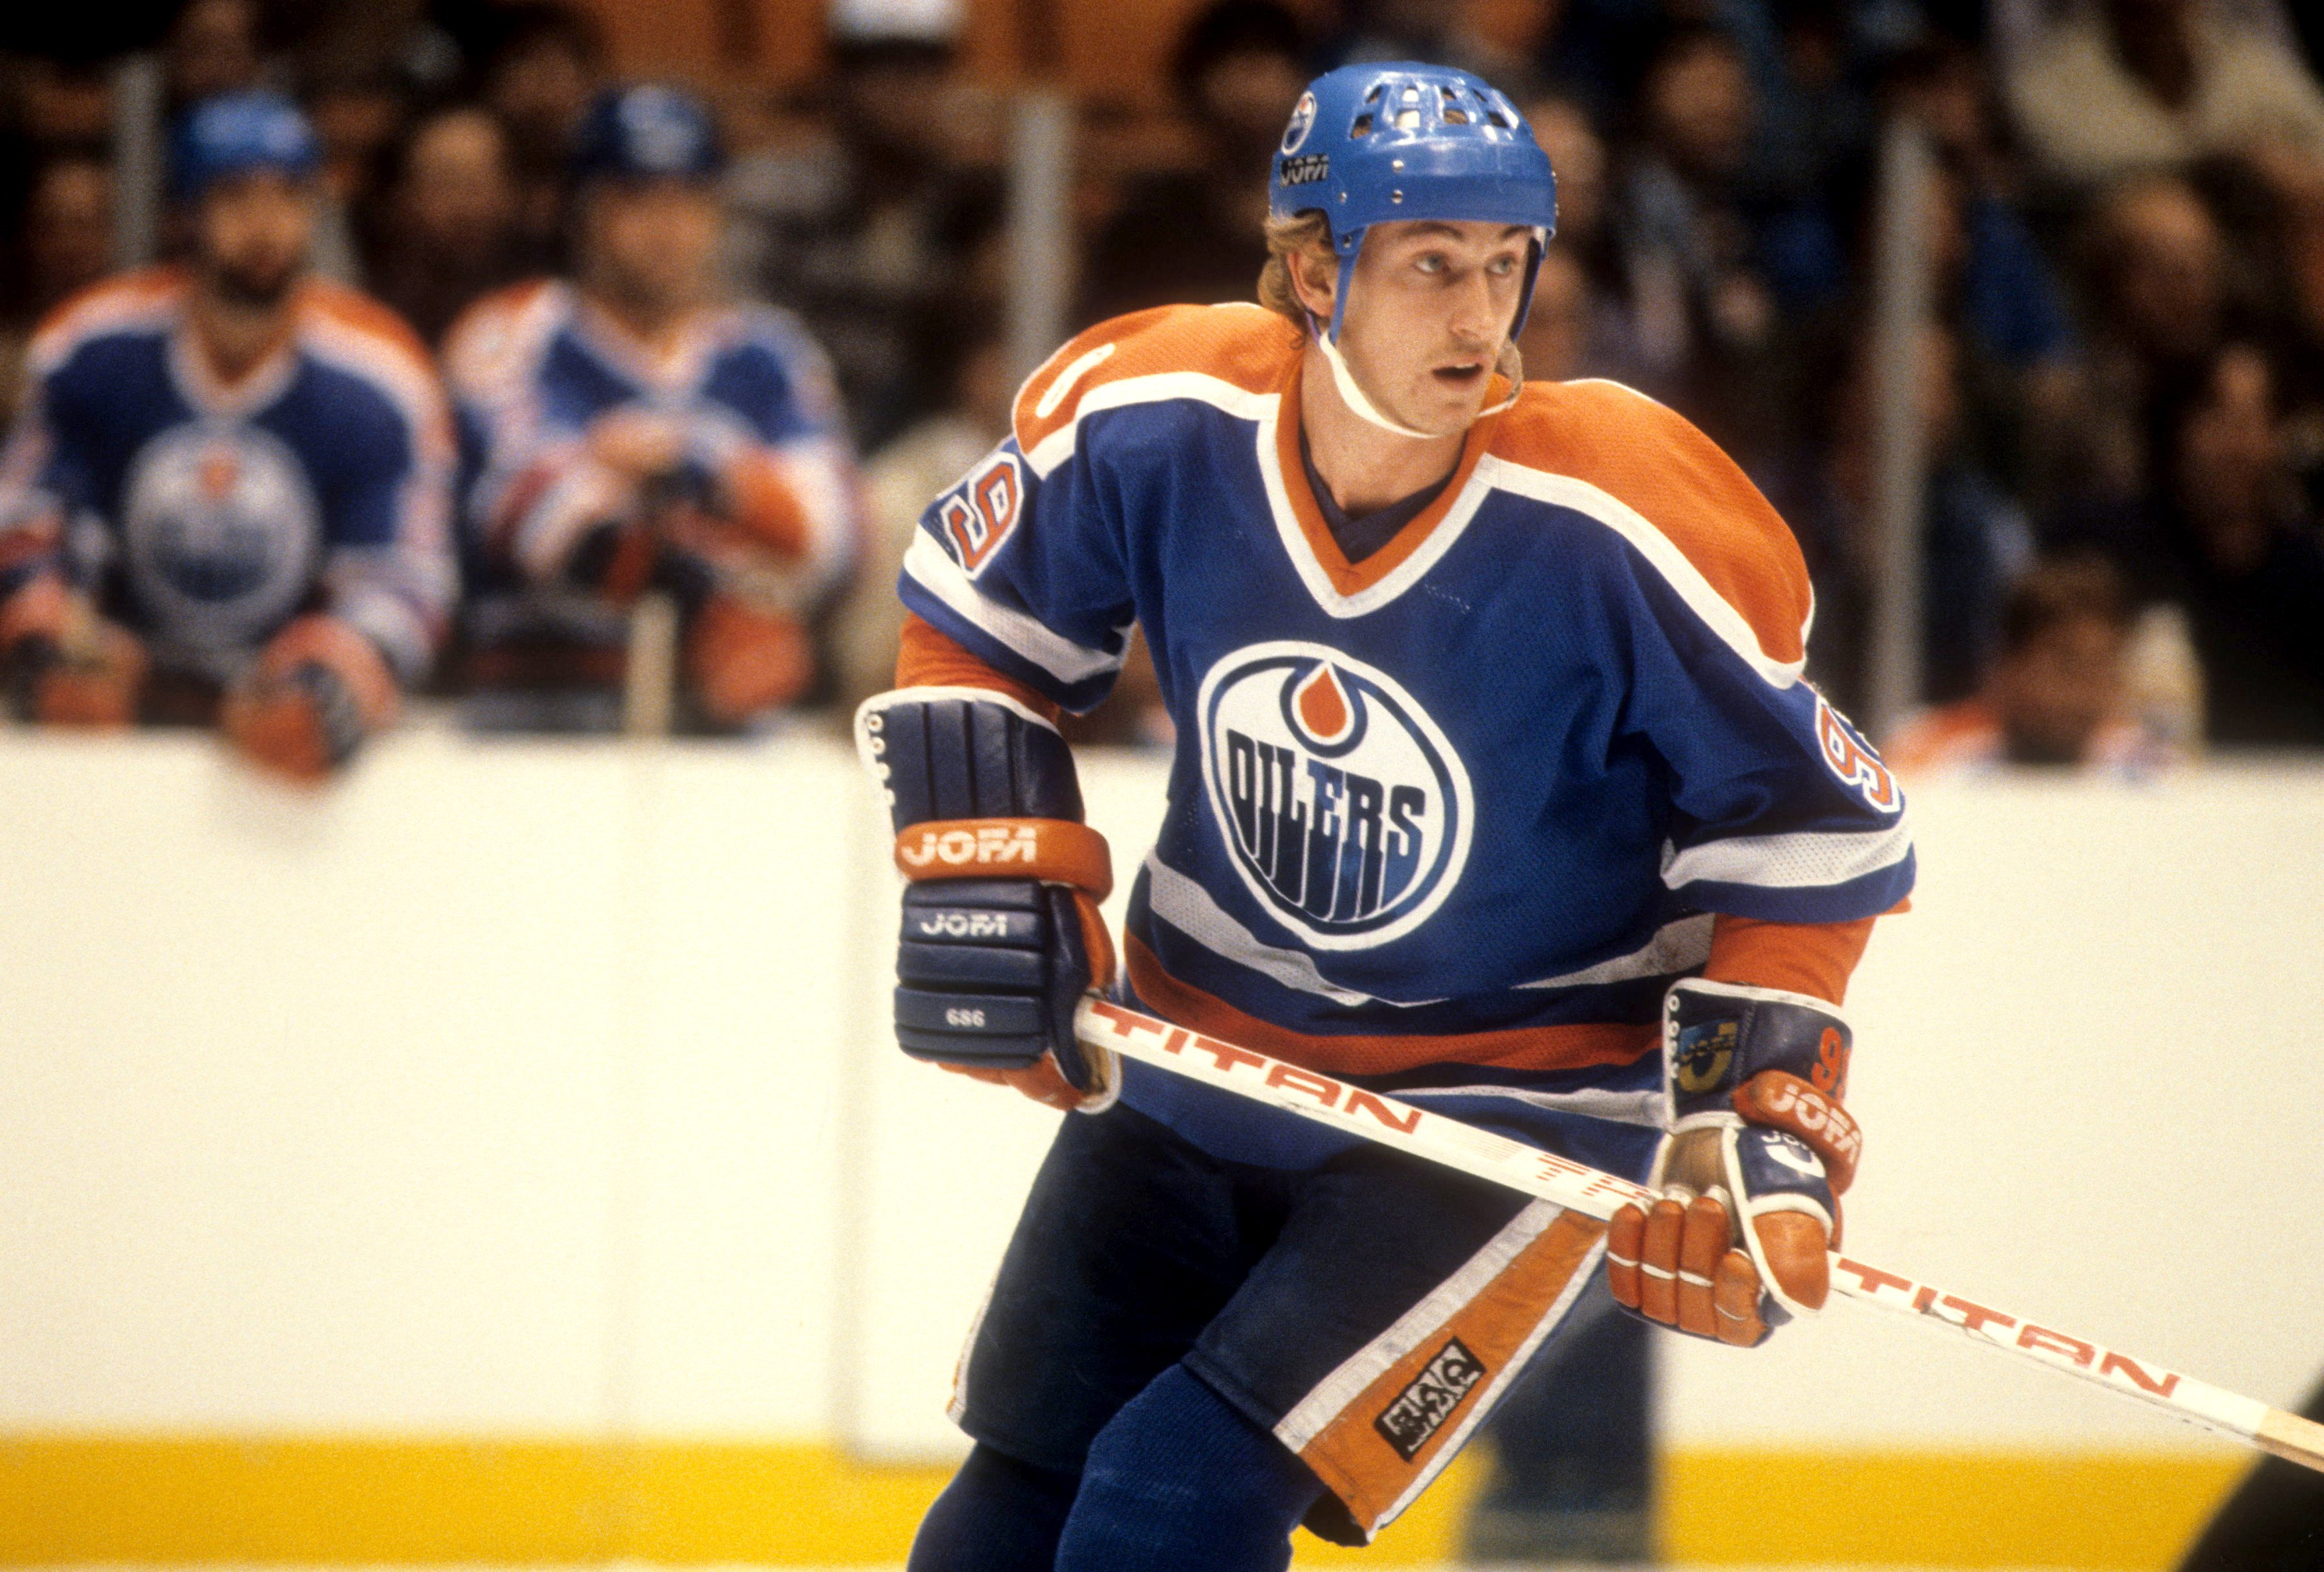 Wayne Gretzky is so far above every player in NHL history that he would still be the all-time points leader if he never even scored one goal.